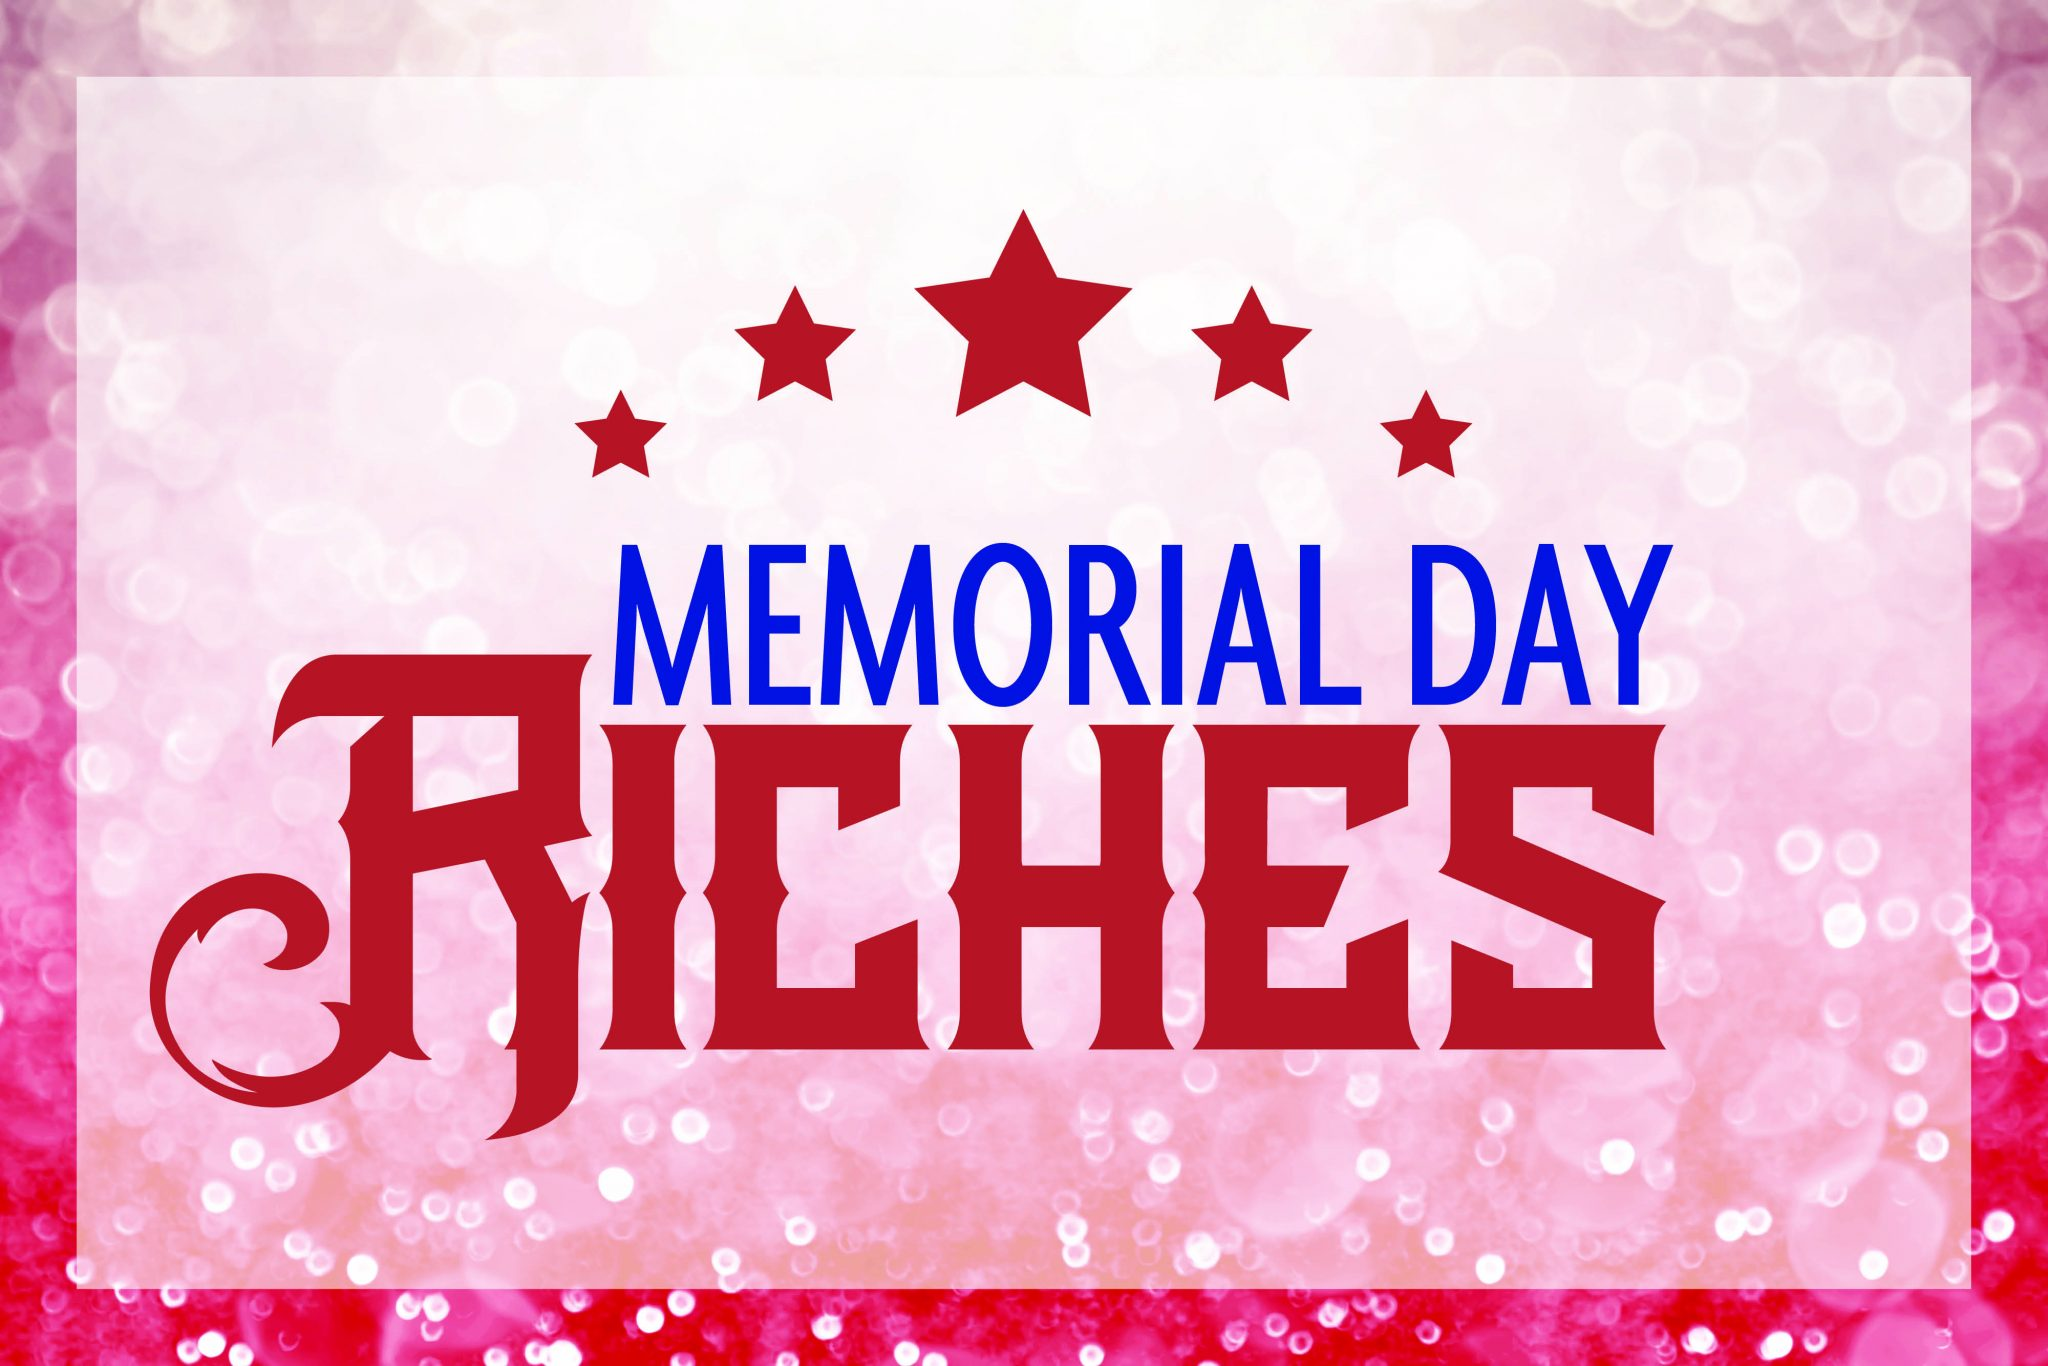 memorial day riches sioux city casino promotions